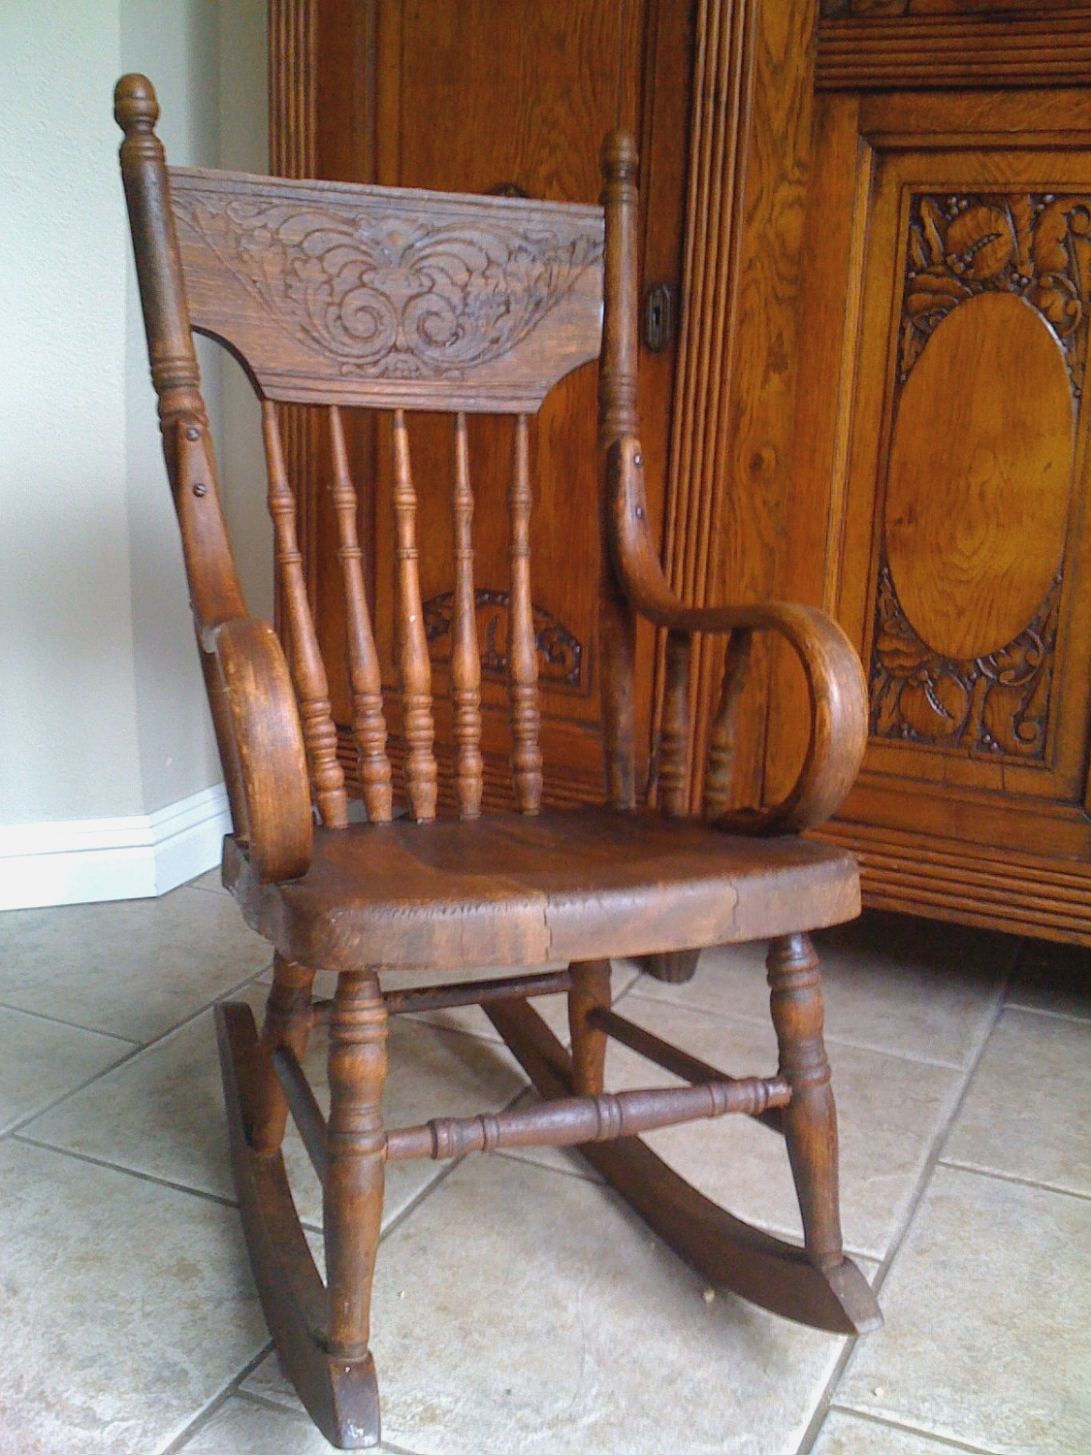 Elegant Old Fashioned Rocking Chair In Antique Child Furniture In Widely Used Old Fashioned Rocking Chairs (View 2 of 15)